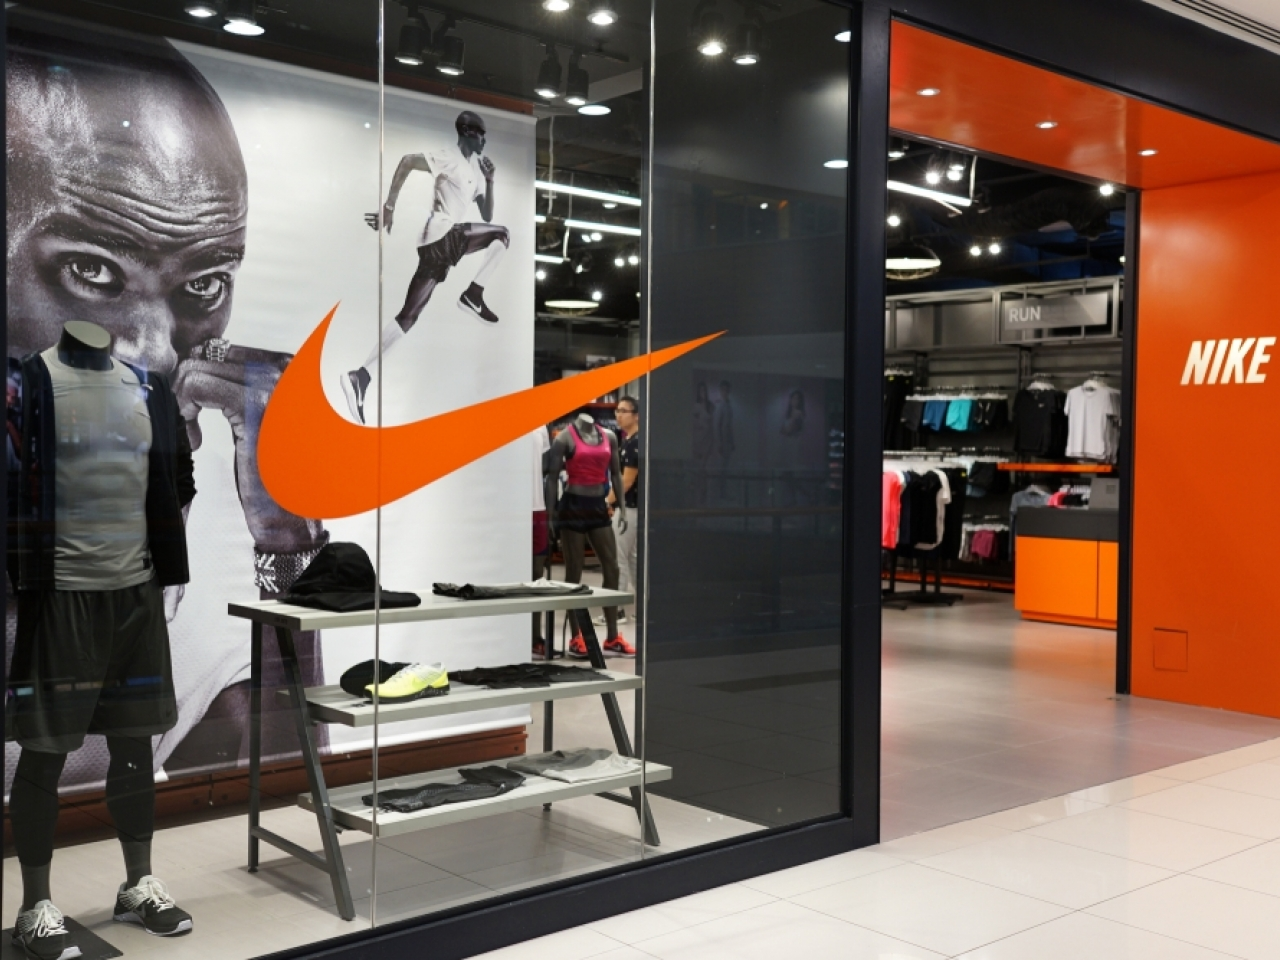 Nike says a lack of supply is weighing on its prospects for next year. File image: Shutterstock